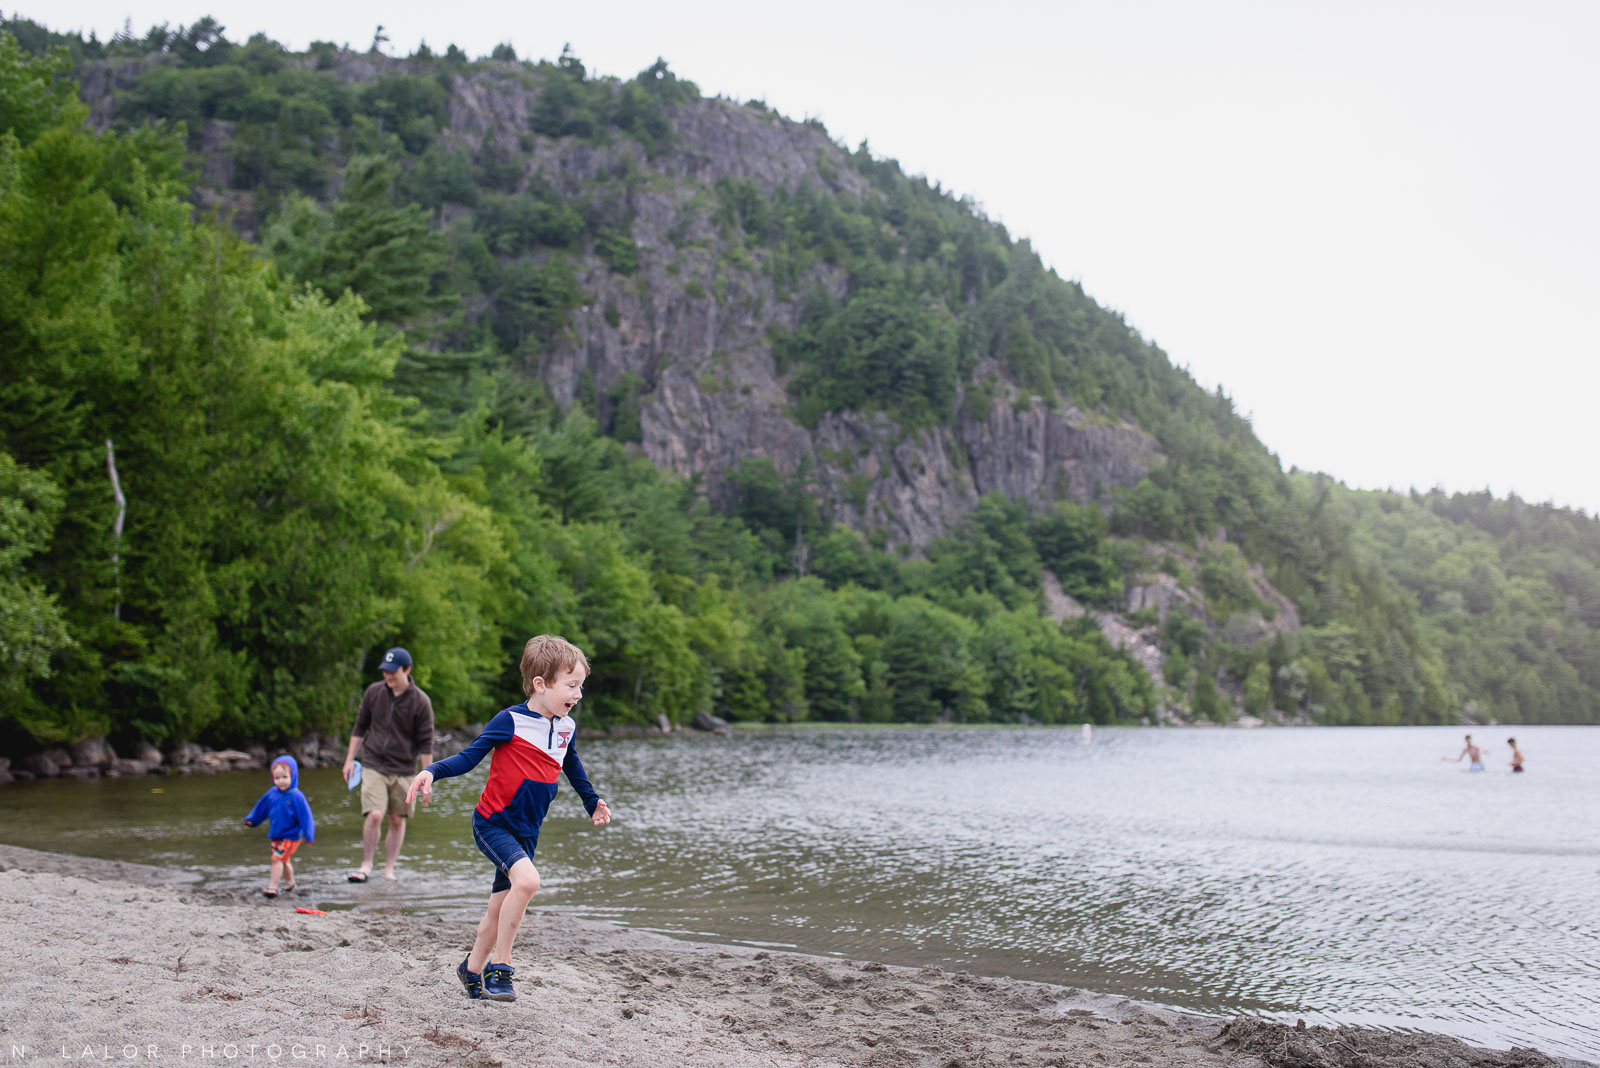 Family vacation with little kids. Catch them if you can. Acadia National Park in Bar Harbor Maine. Photo by N Lalor Photography.